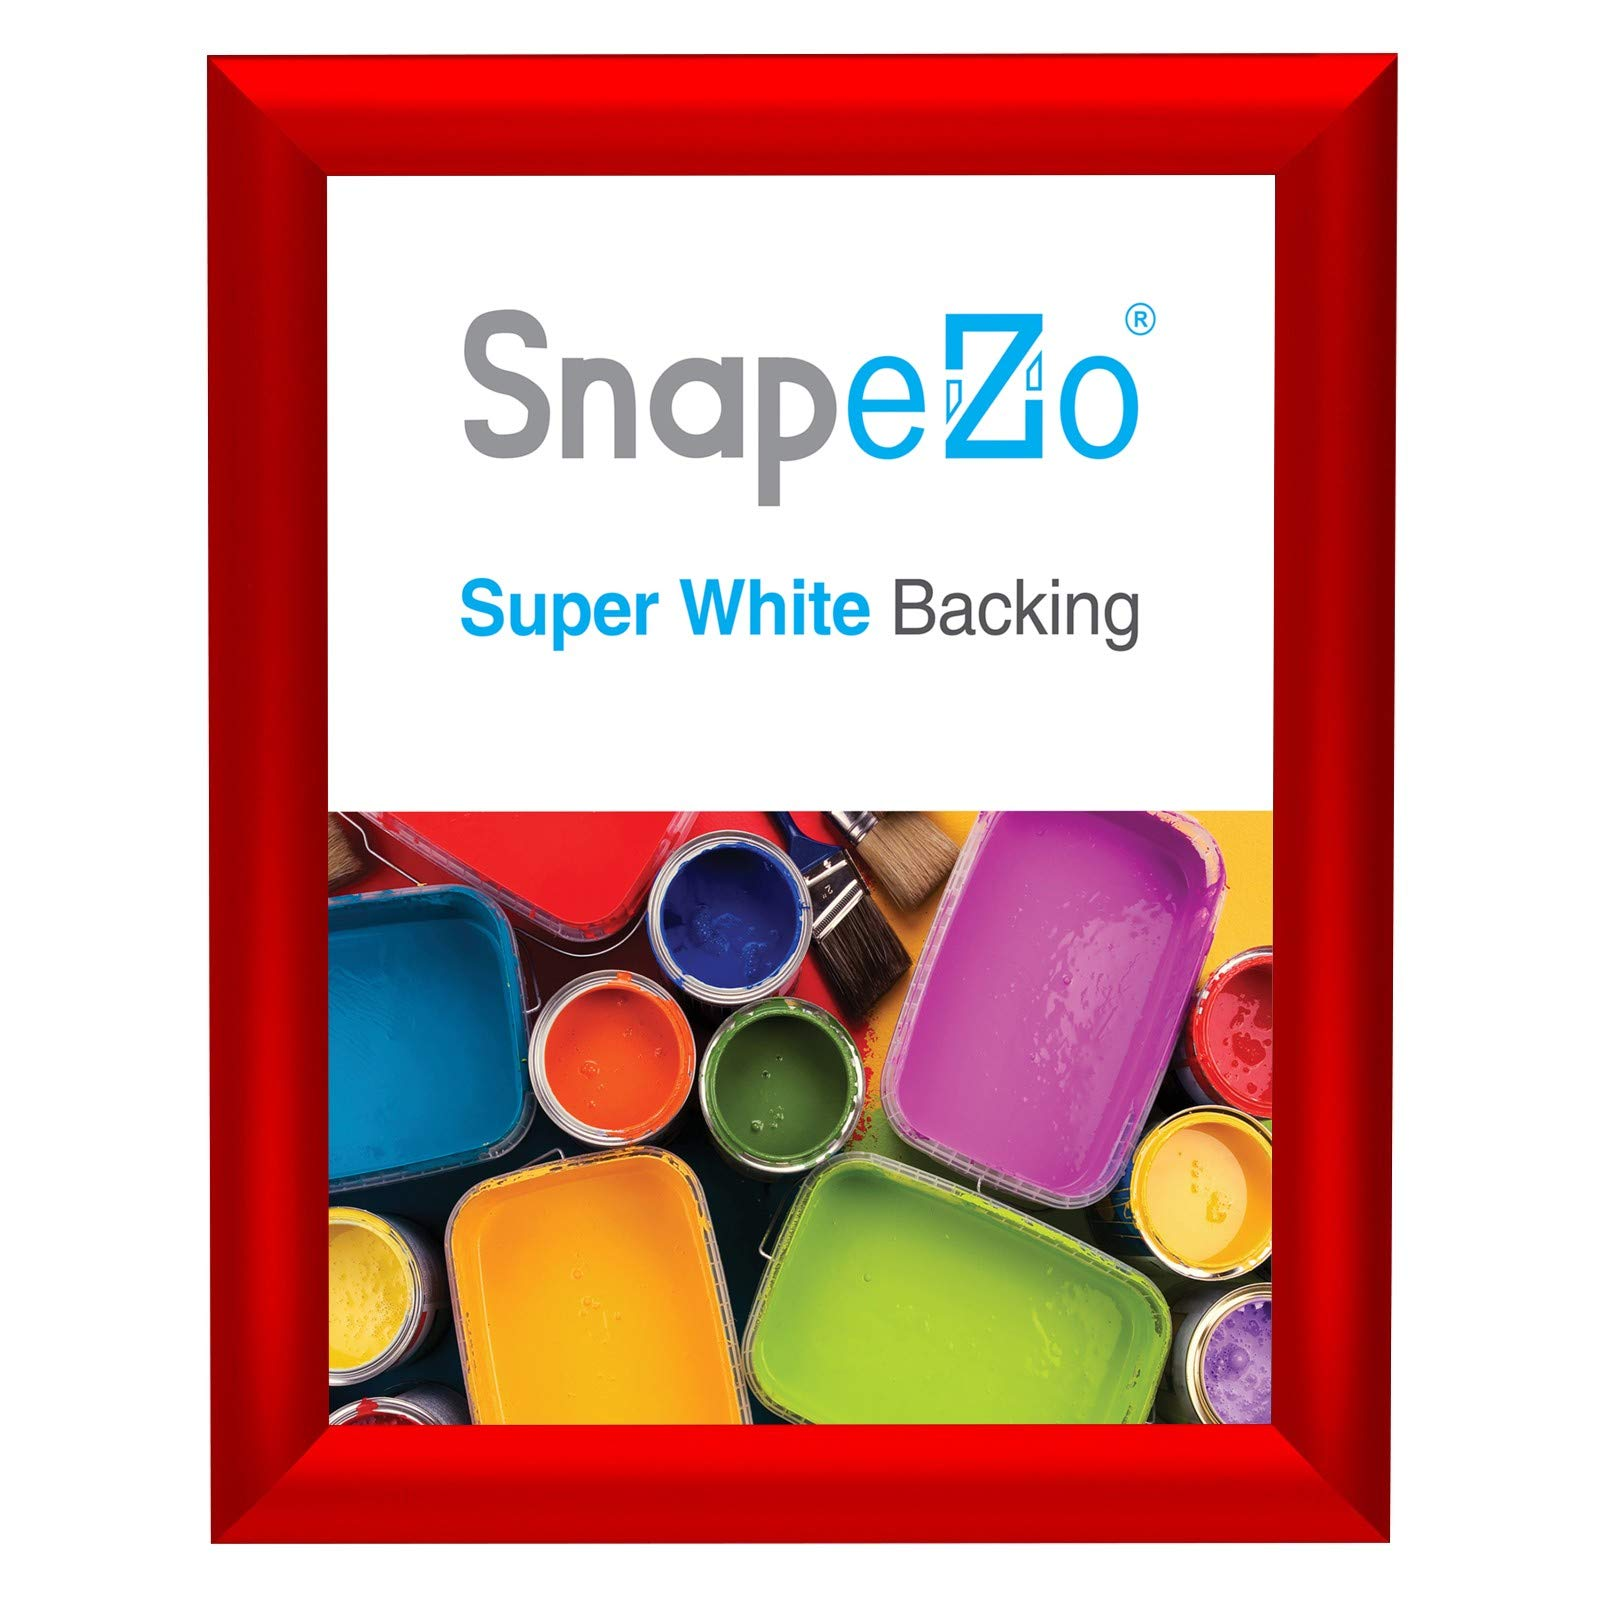 SnapeZo Photo Frame 8x10 Inches, Red 1 Inch Aluminum Profile, Front-Loading Snap Frame, Wall Mounting, Sleek Series by SnapeZo